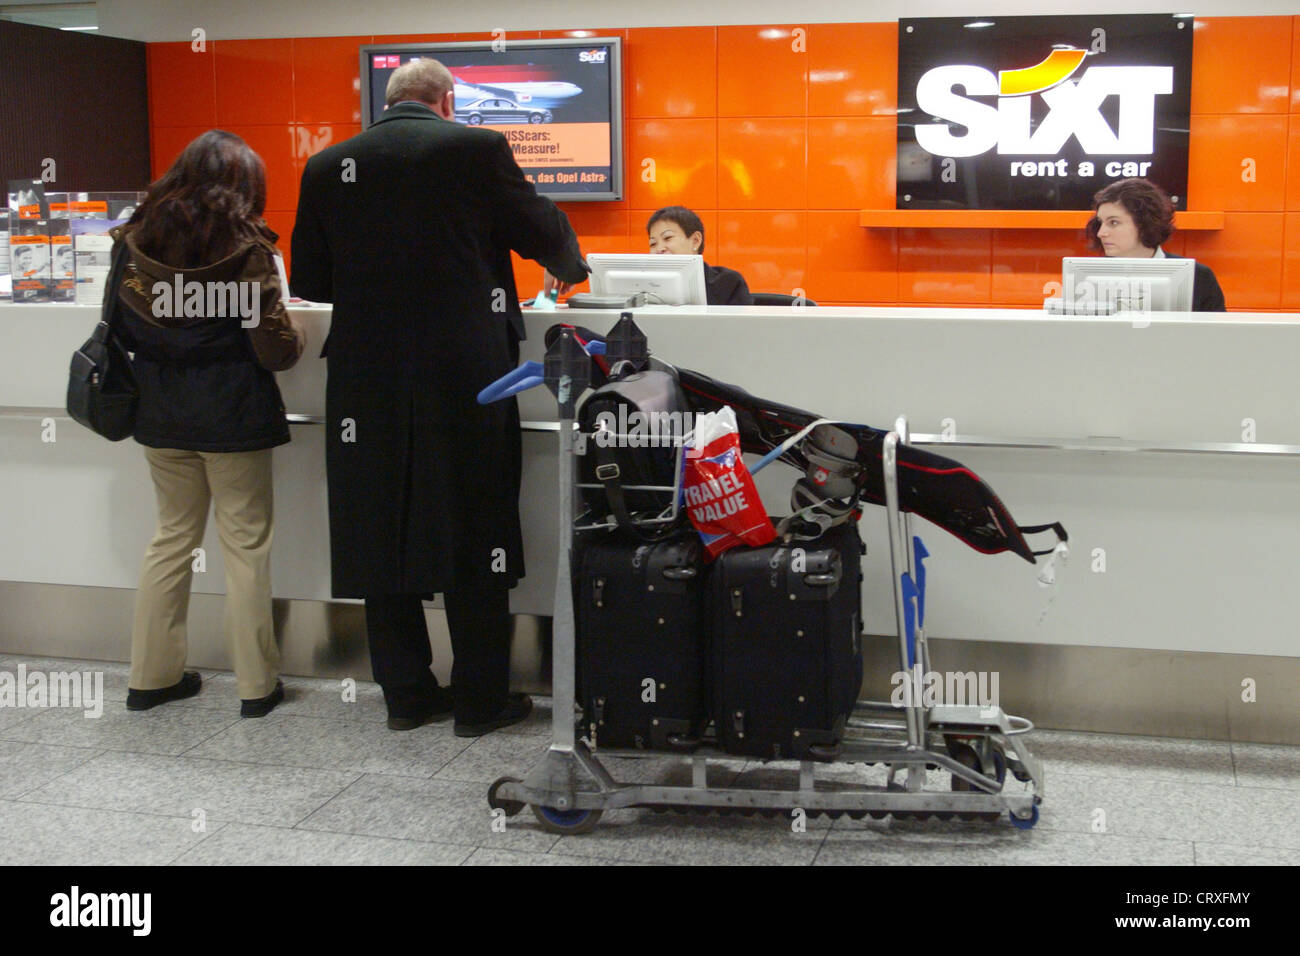 sixt rent a car counter stockfoto bild 49140923 alamy. Black Bedroom Furniture Sets. Home Design Ideas